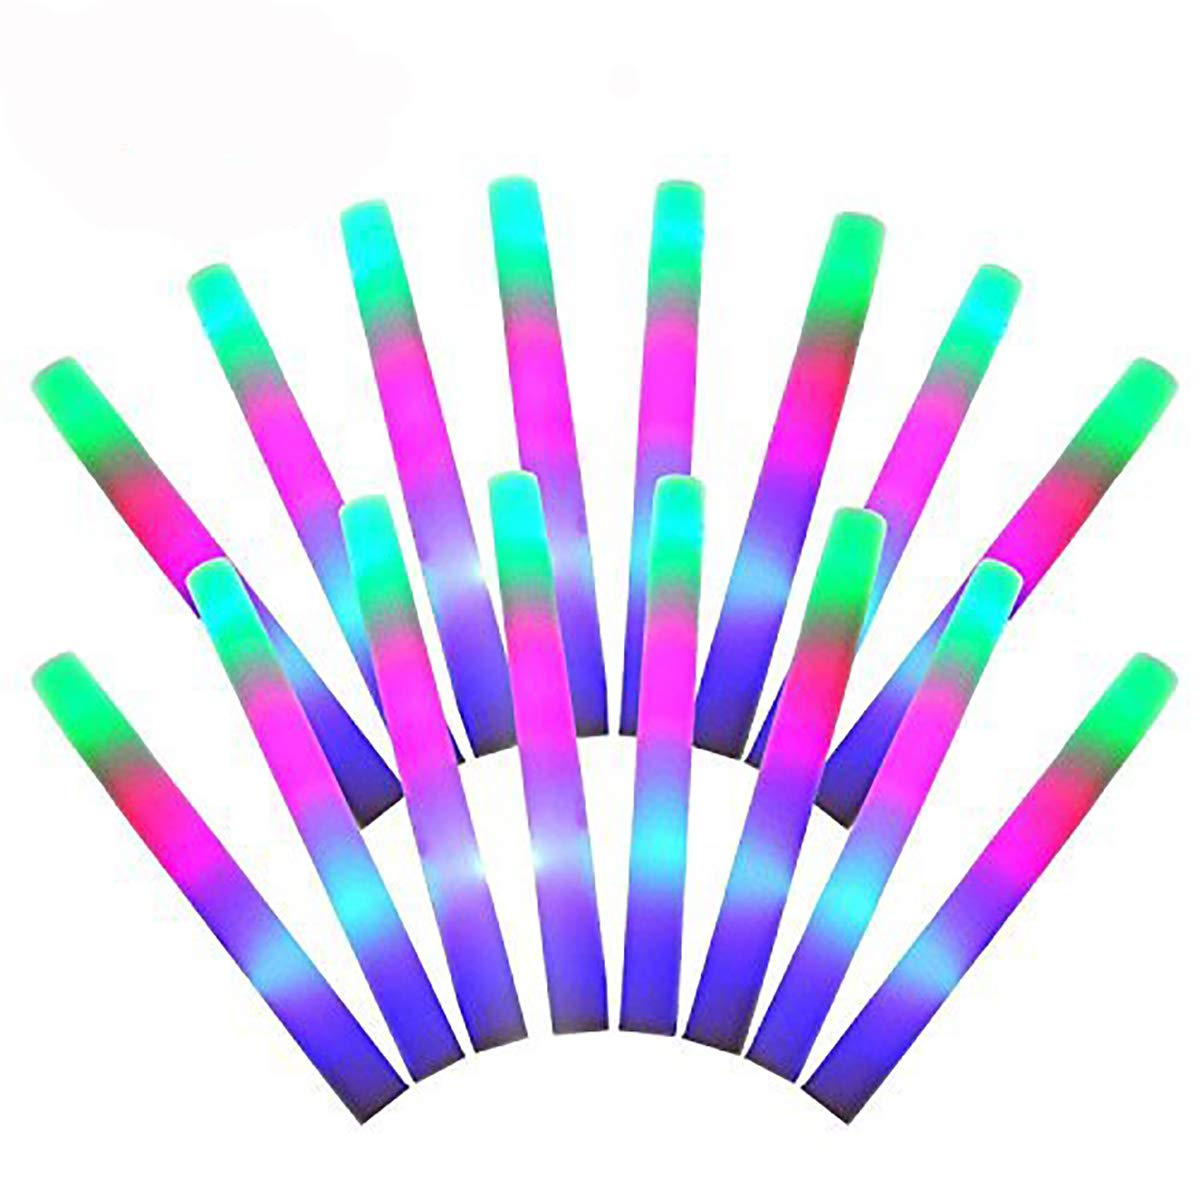 INIEIWO 100Pcs LED Foam Sticks Multicolor Glow Batons for Weddings Partys Raves Festivals Birthdays, Children Toy with 3 Modes Lighting (100 Pack)